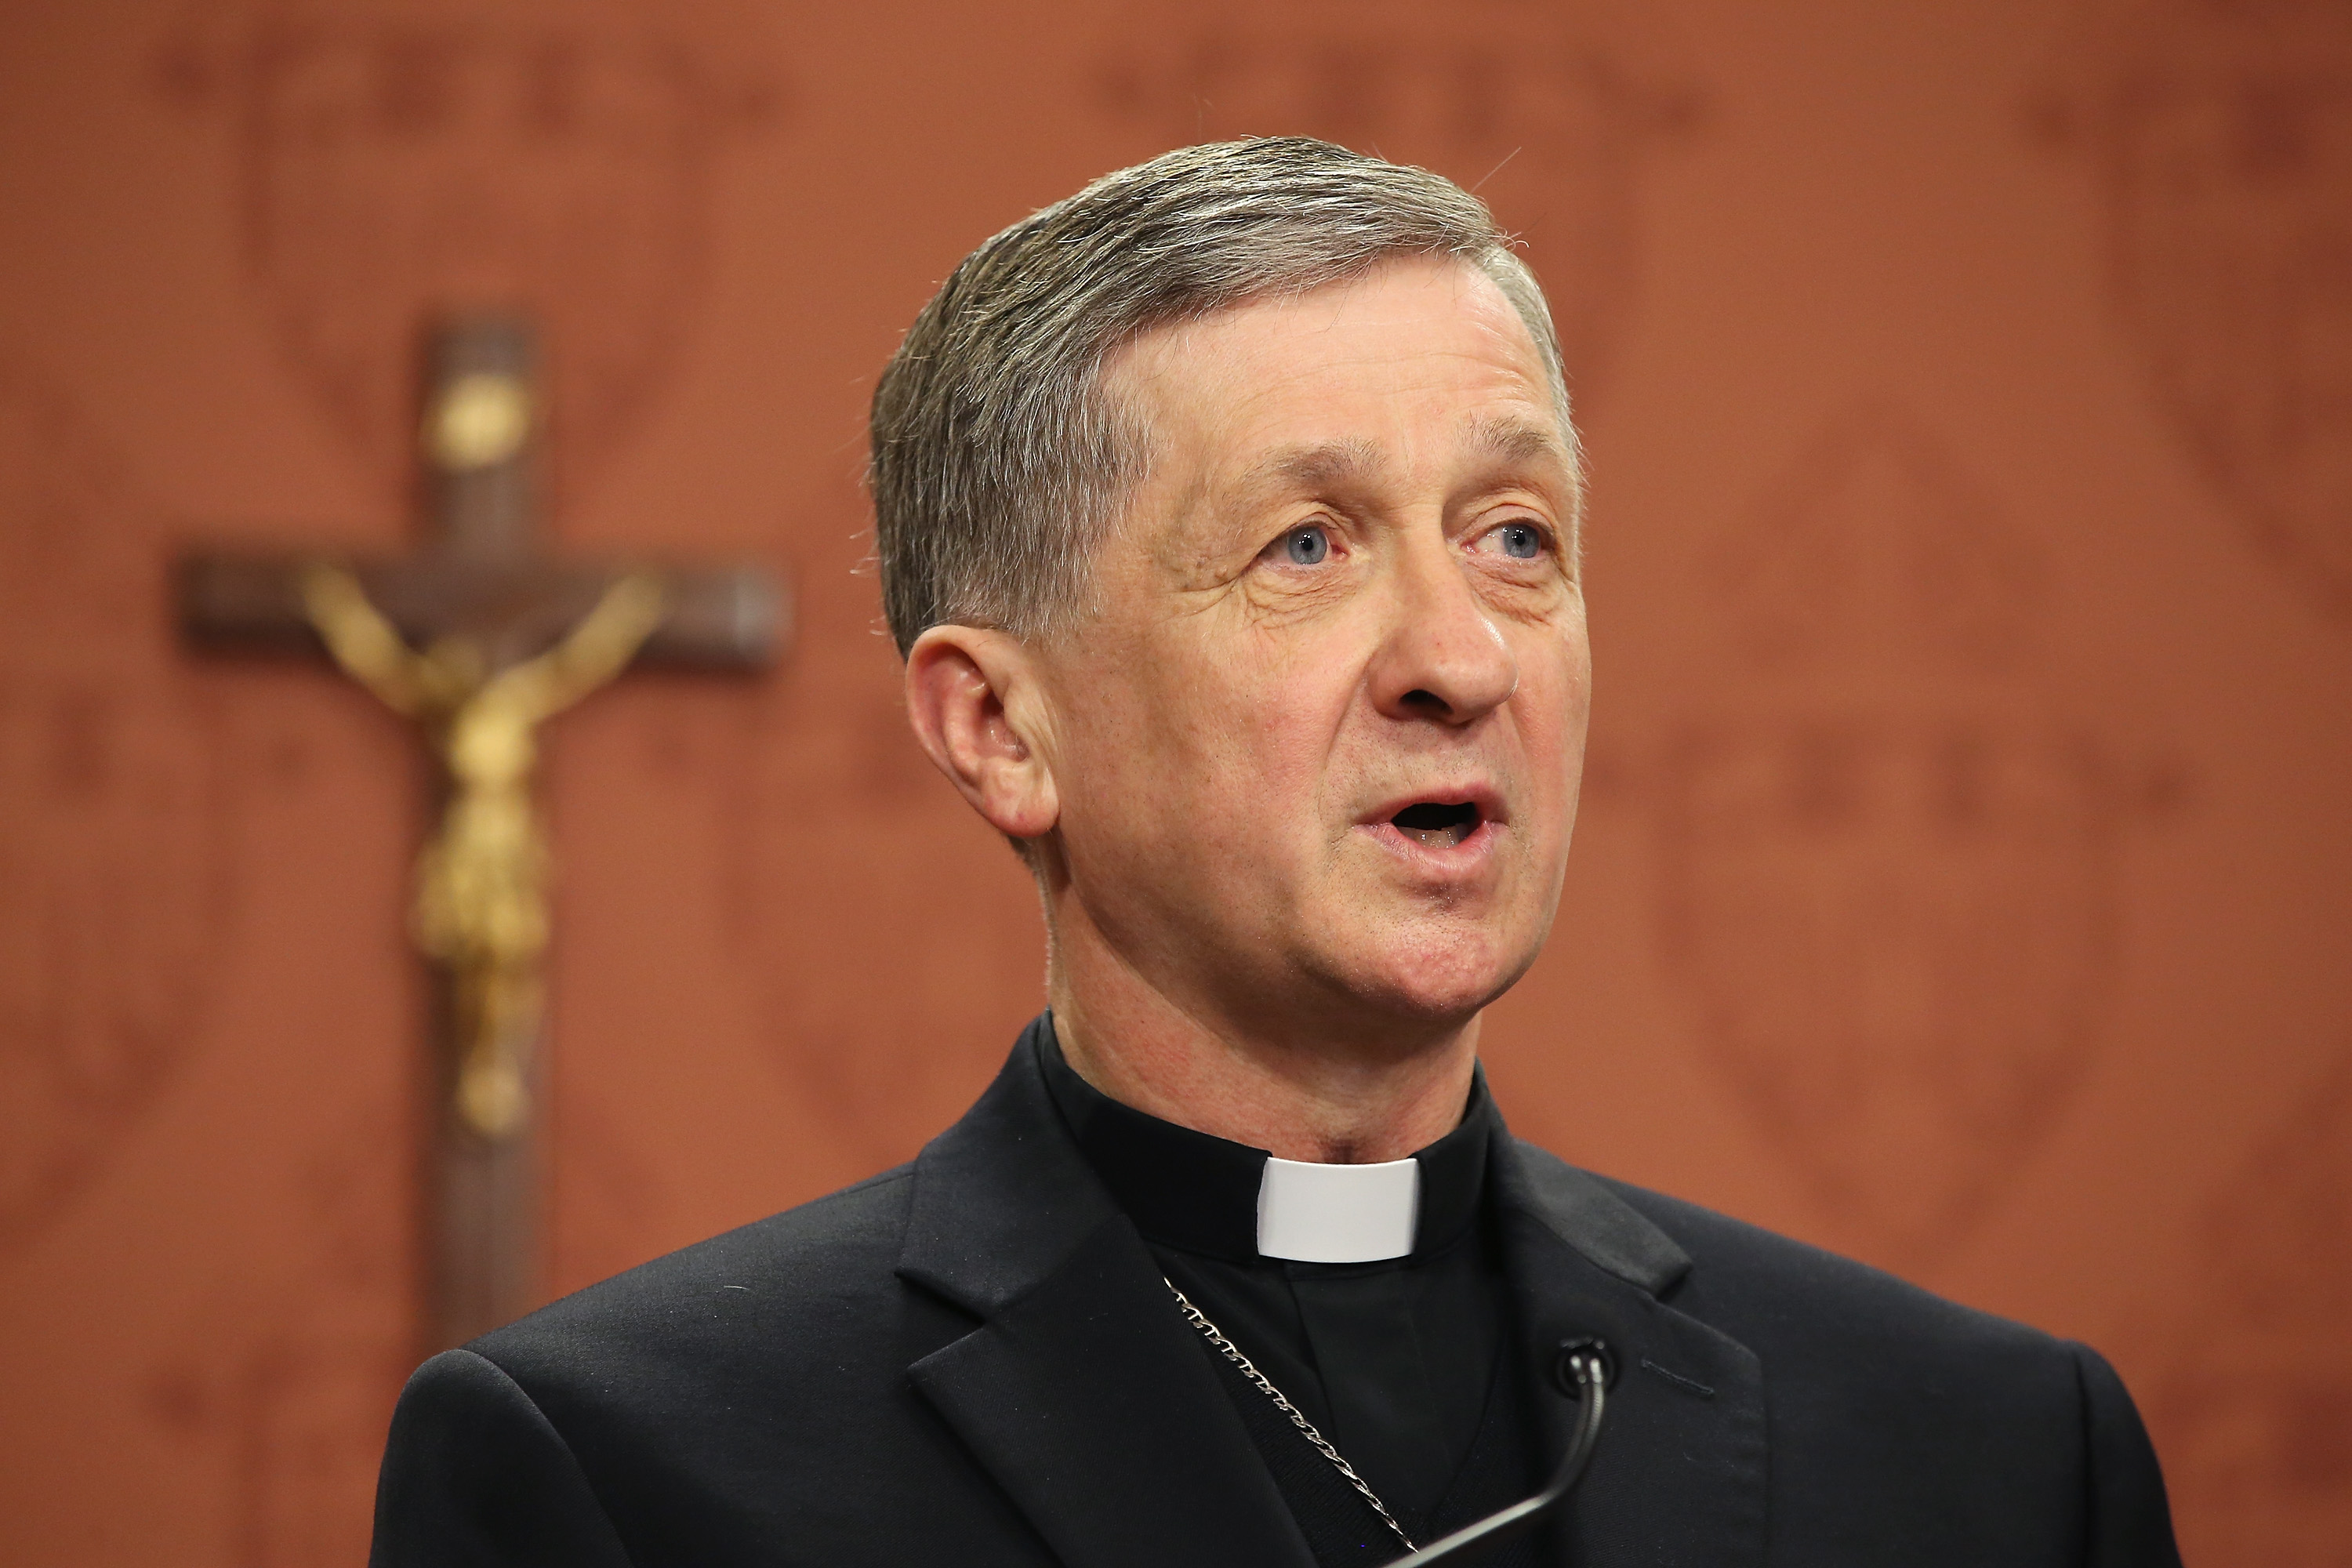 Archbishop-Elect Blase Cupich speaks to the press on September 20, 2014 in Chicago, Illinois.